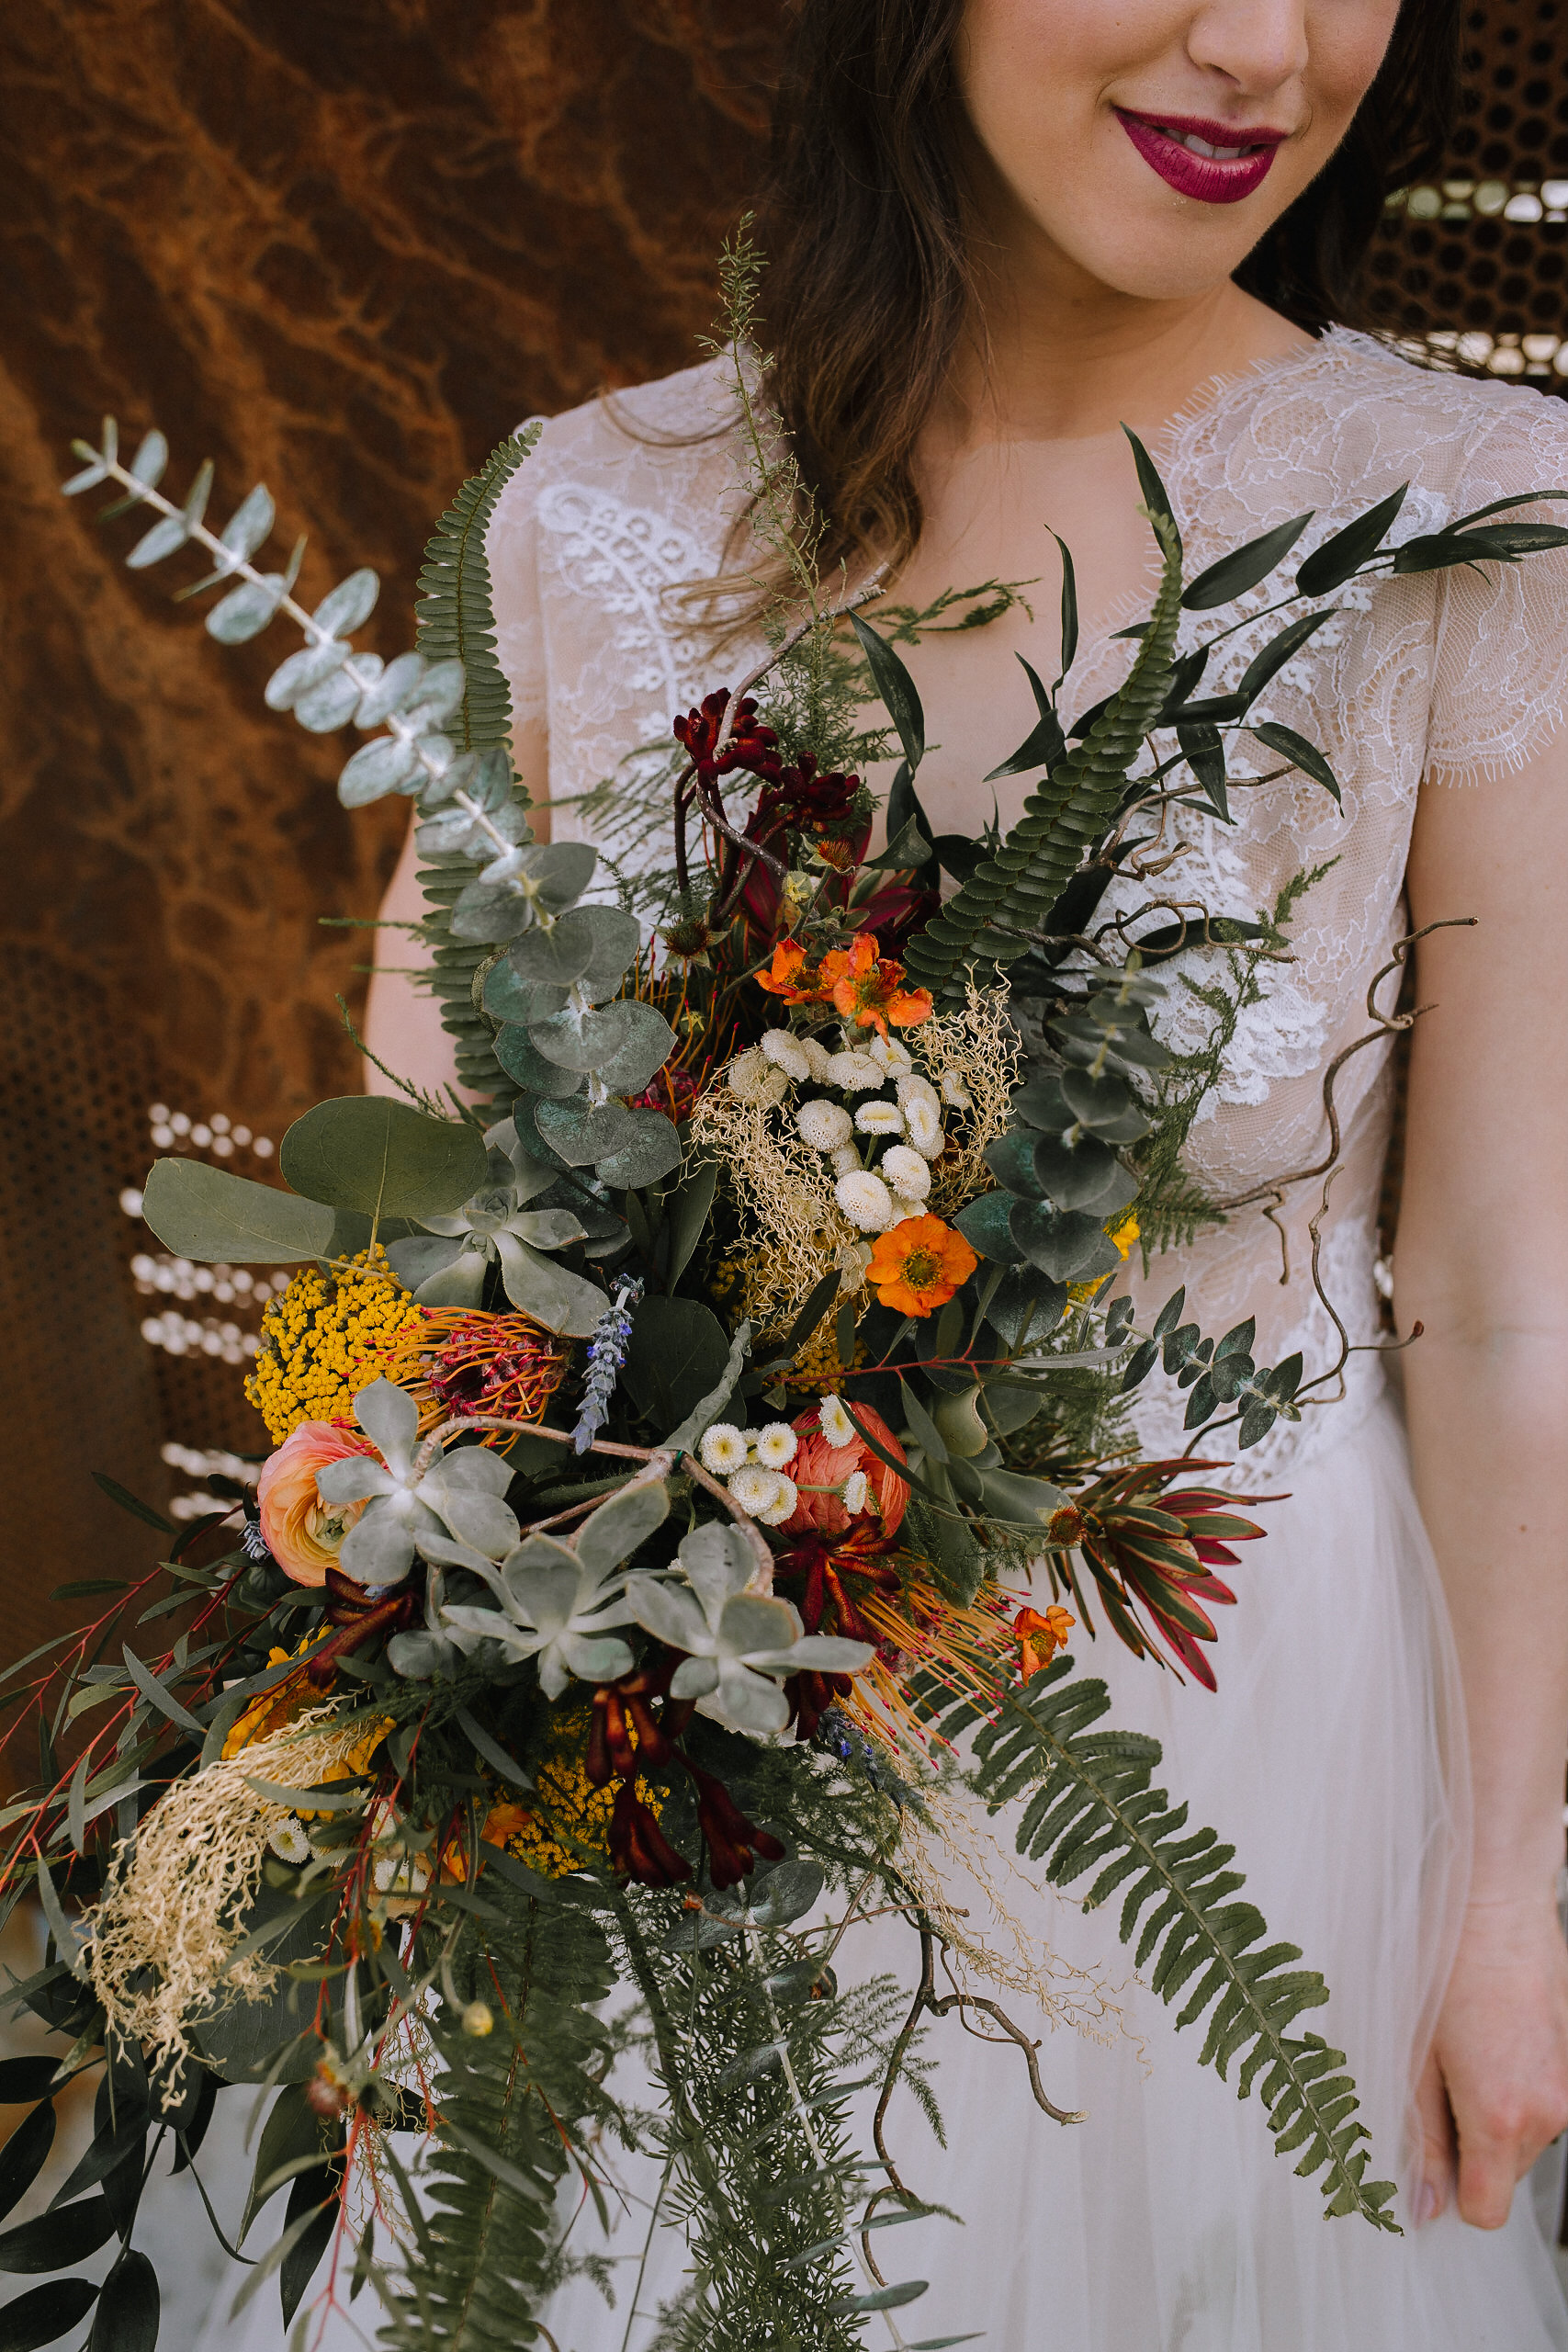 Organic boho wedding bouquet for fall vintage boho styled shoot designed by exhale events. Get inspired by these gorgeous wedding details at exhale-events.com!